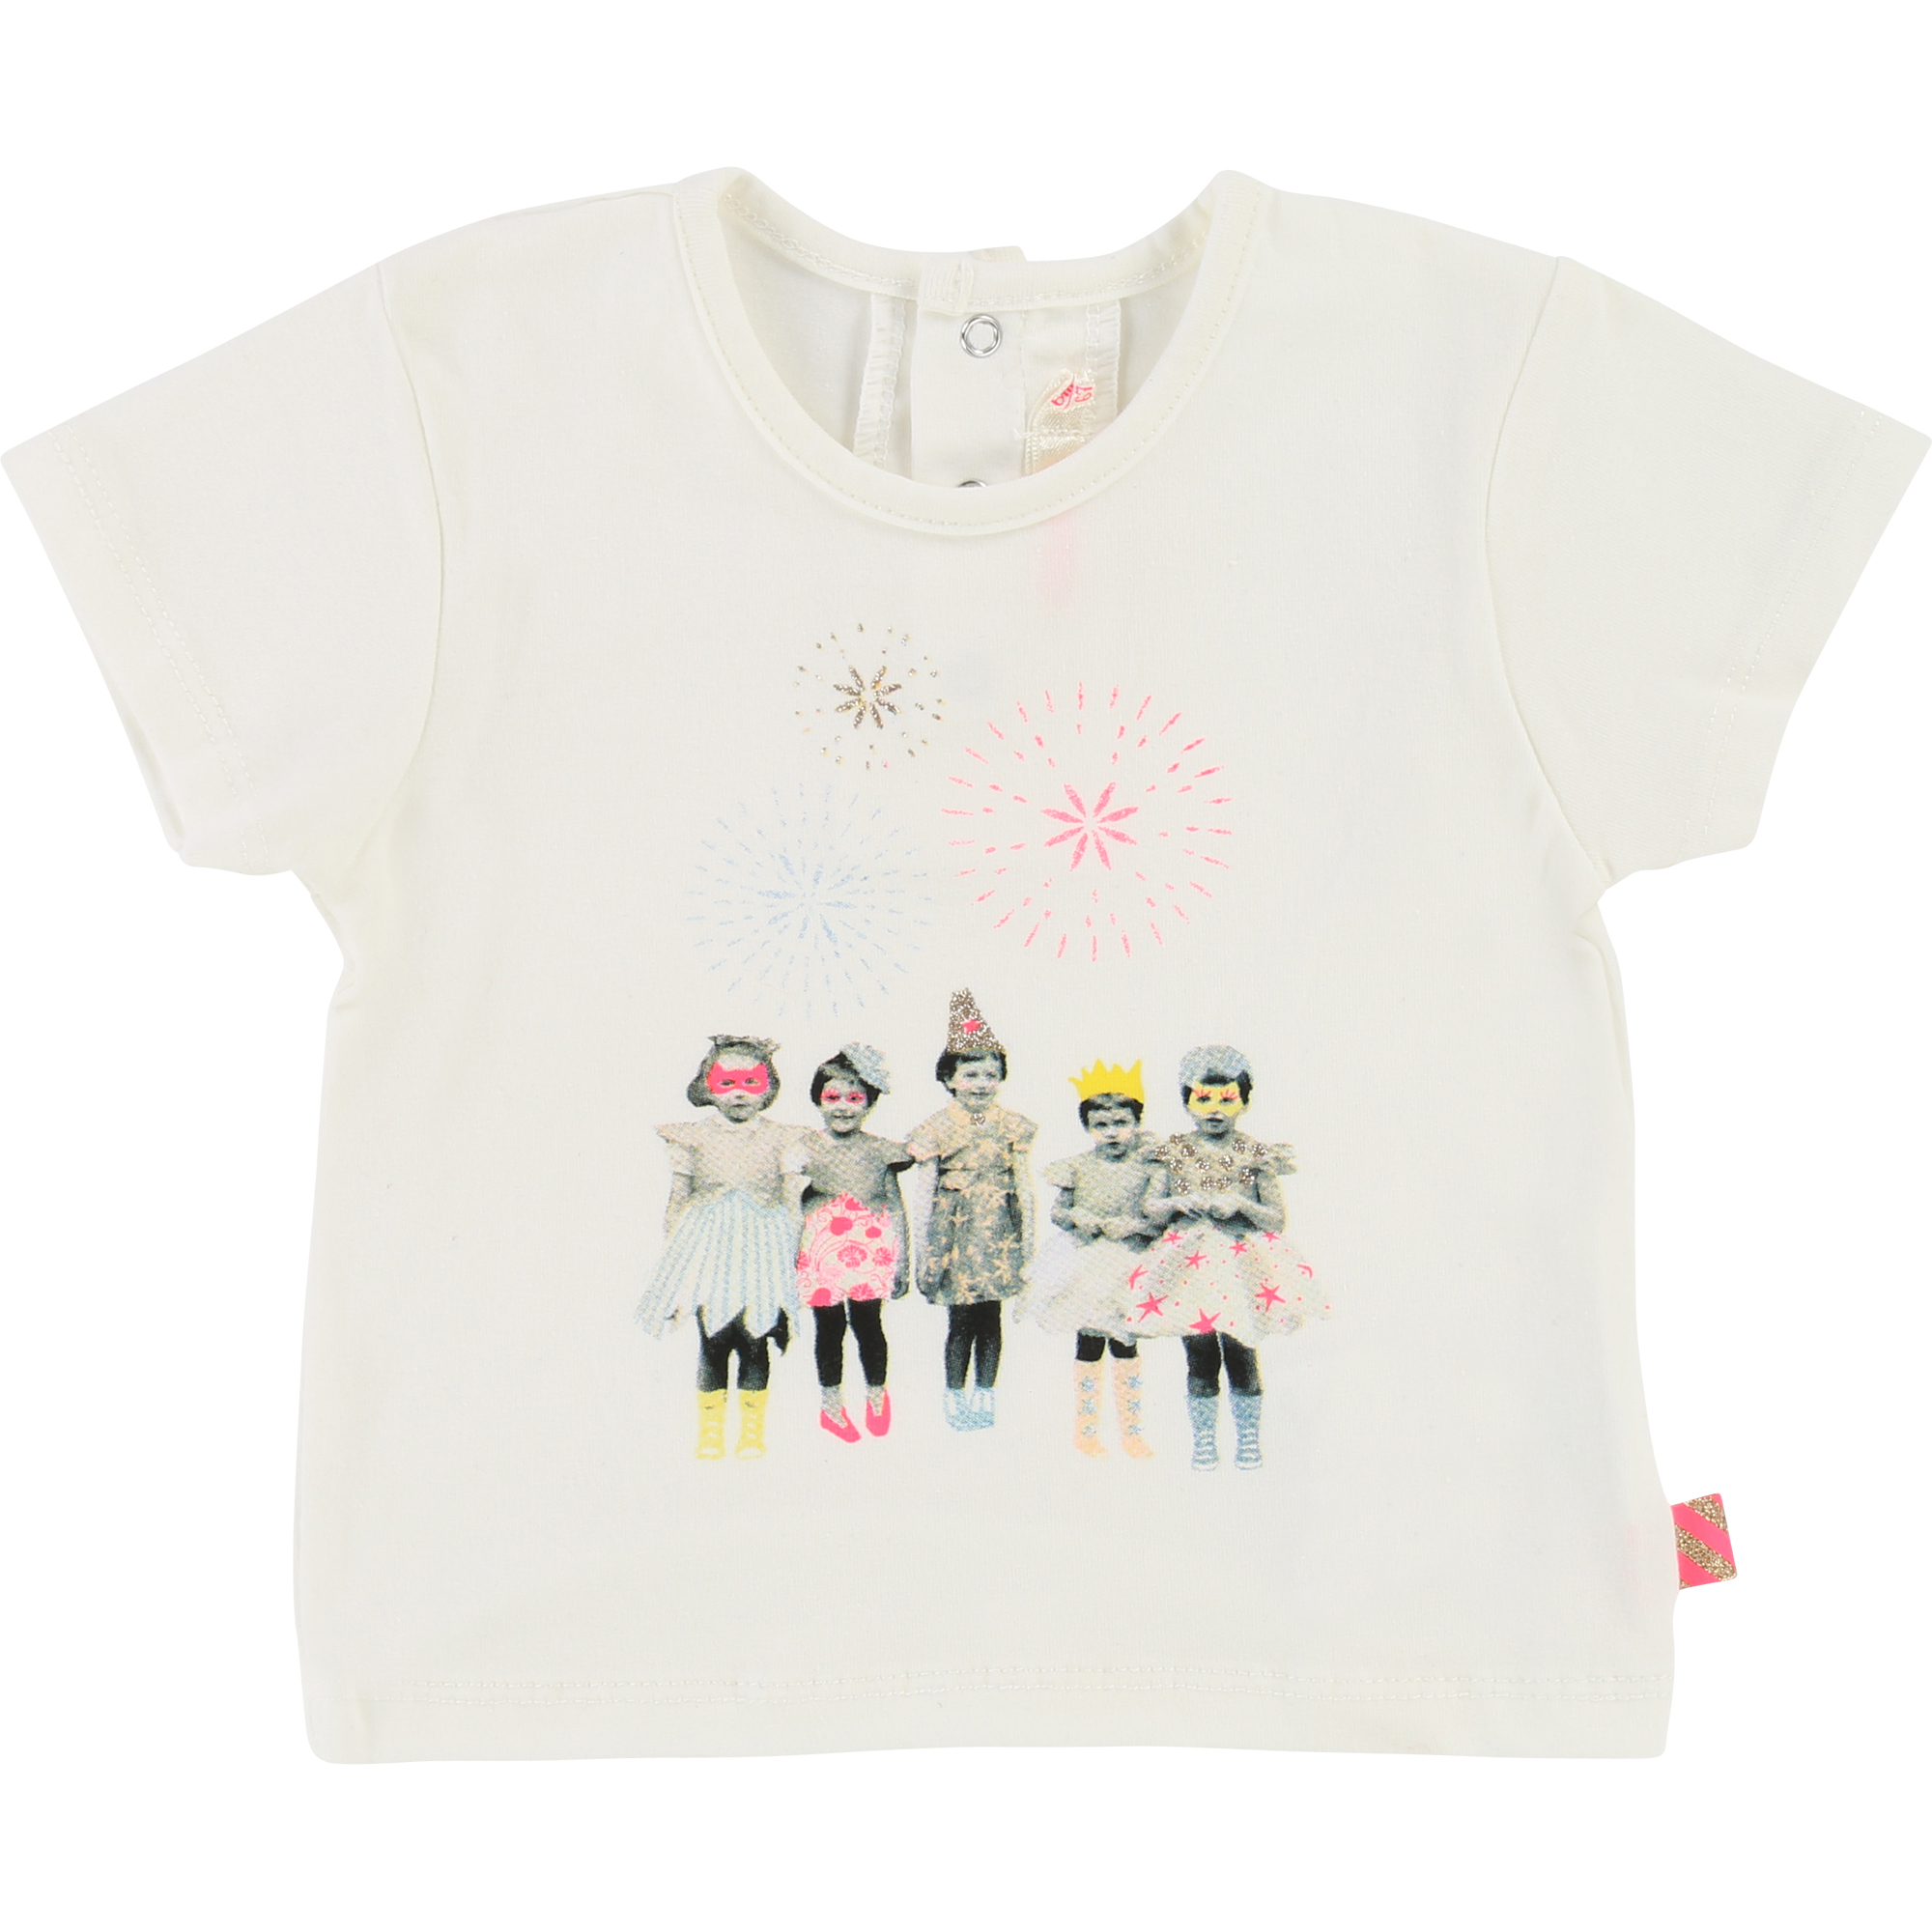 Billieblush  - SPRING IVORY T-SHIRT FRIENDS - Clothing